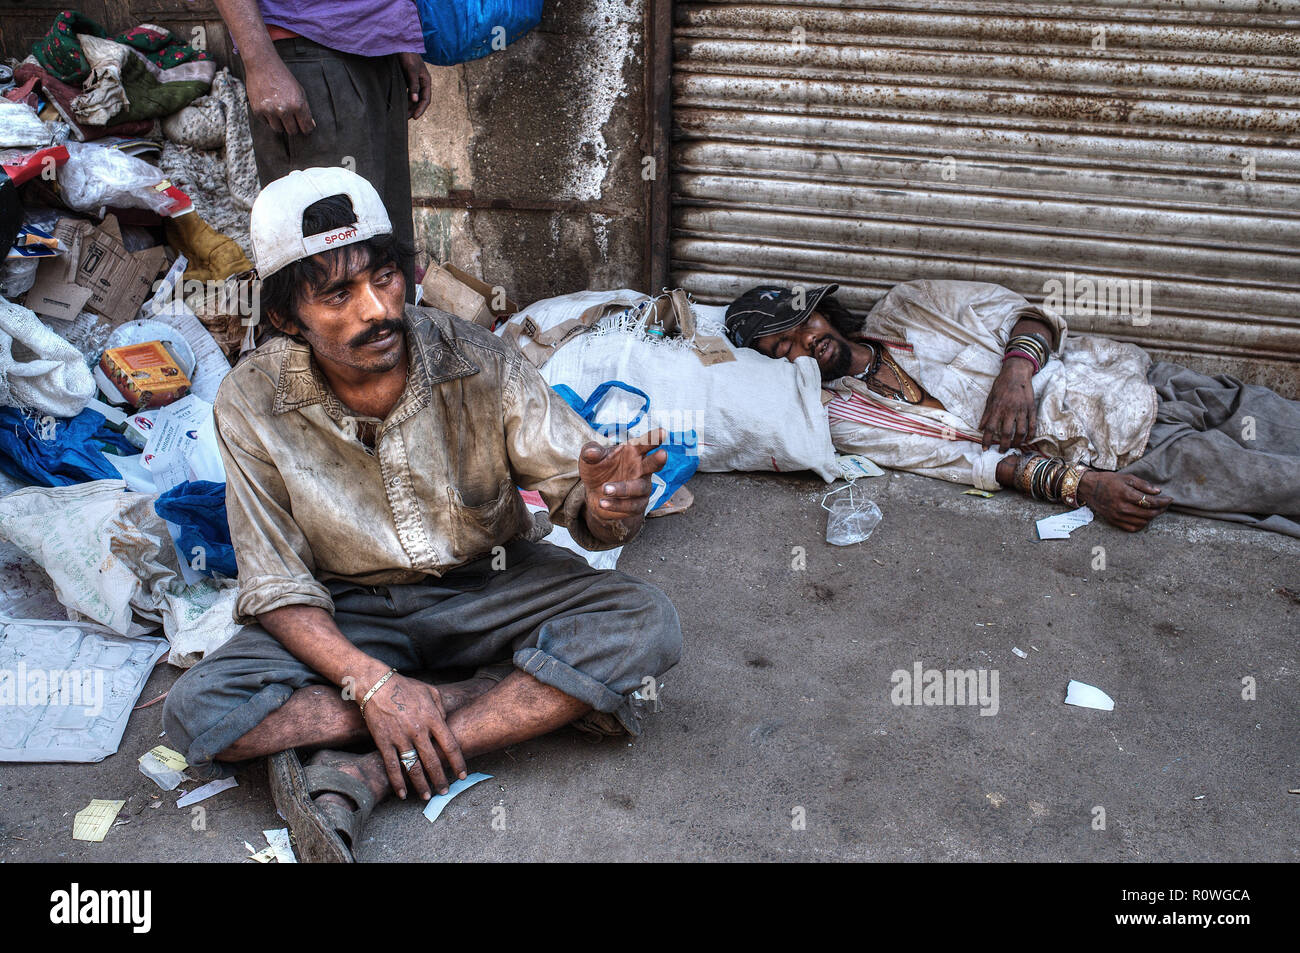 Drug addicts in a filth-strewn lane in the notorious Dongri area of Mumbai, India, mostly using a cheap heroin version called 'brown sugar' - Stock Image